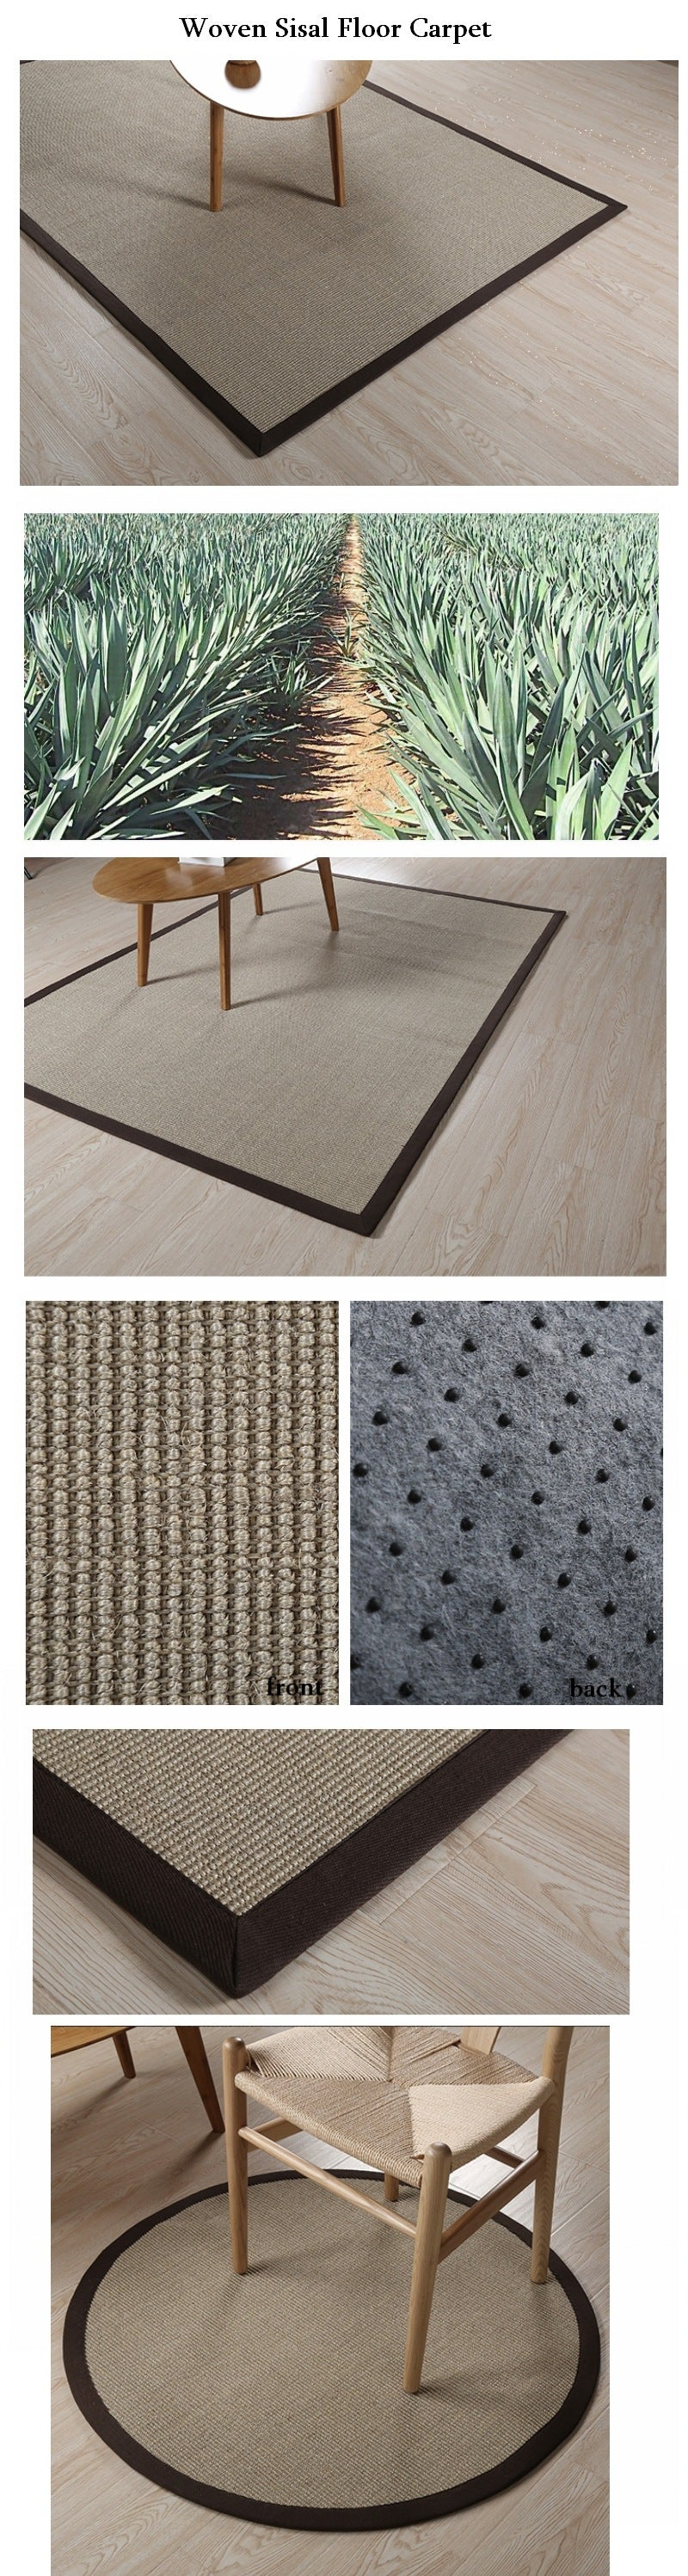 Floor Carpet and Rugs for Dining Room and Bedroom, Large Sisal Carpet, Woven Floor Carpet